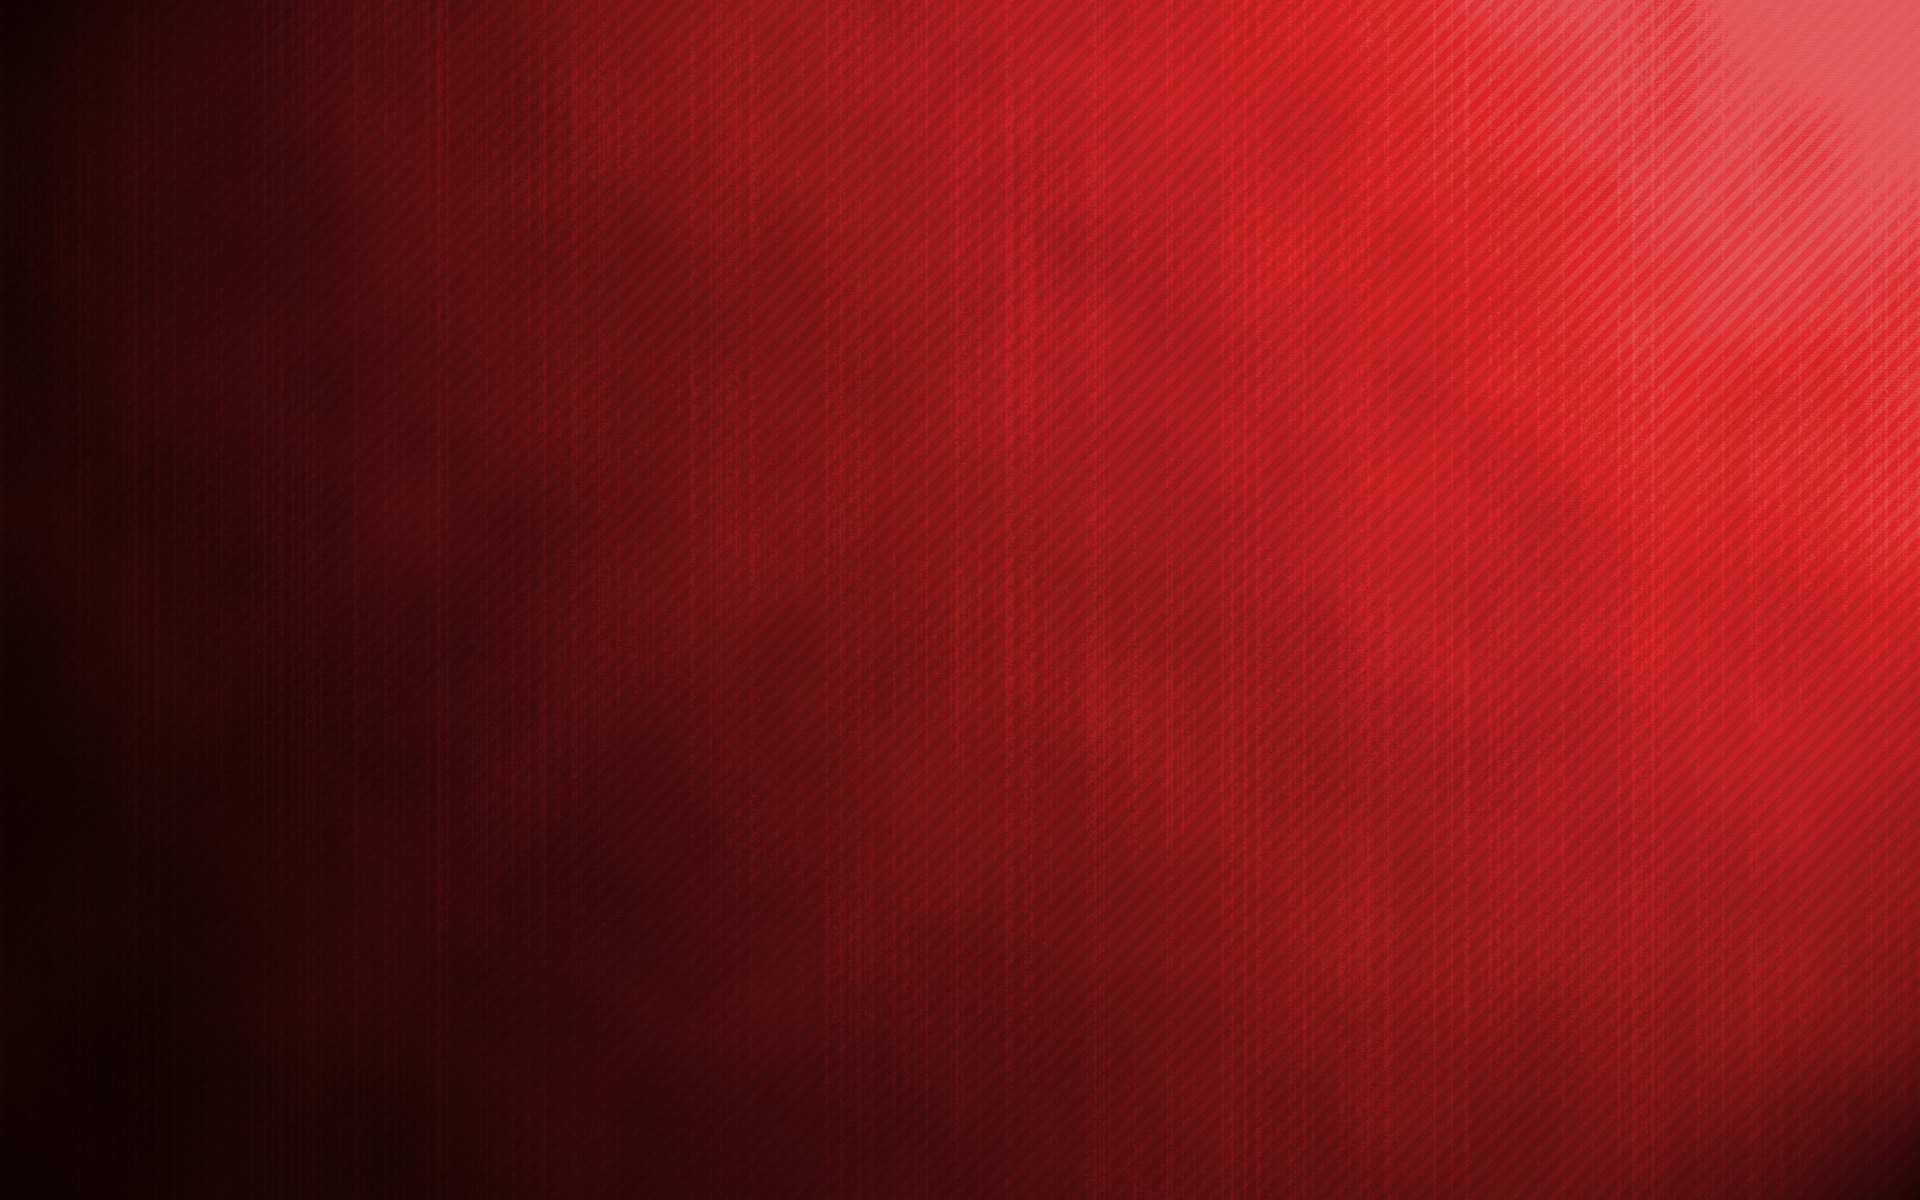 simply-red-backgrounds-wallpapers